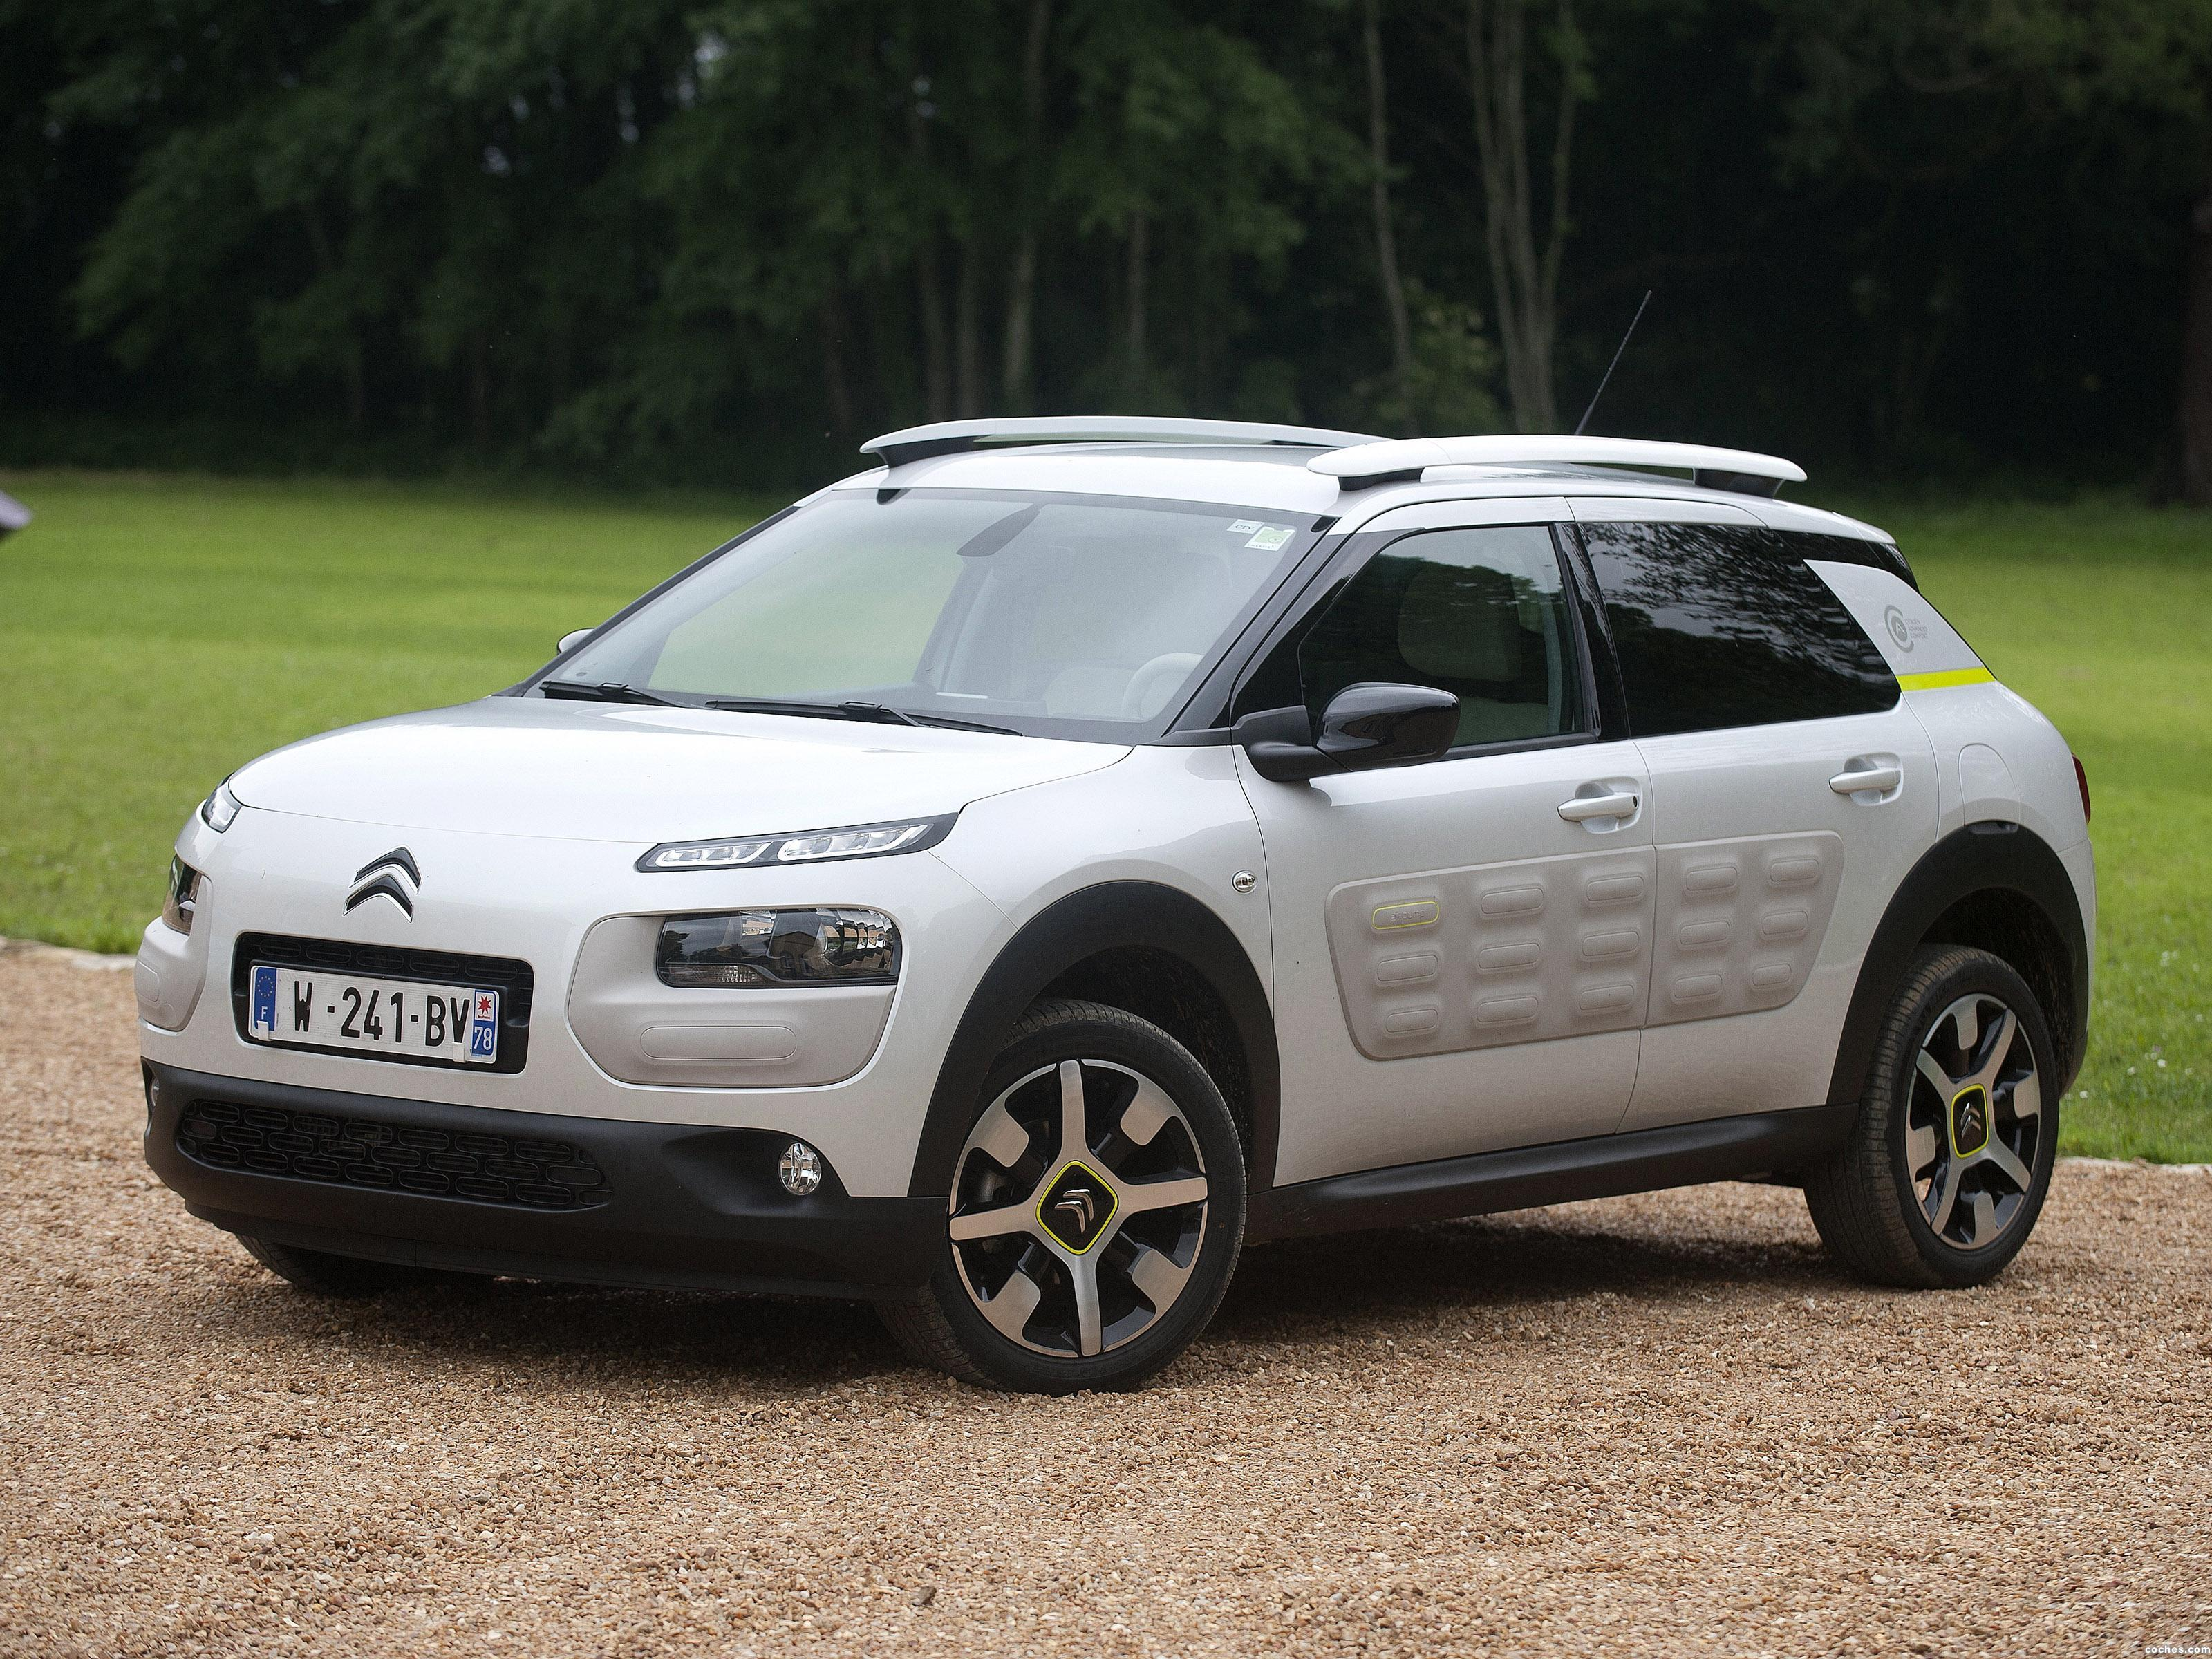 fotos de citroen c4 cactus advanced comfort lab prototype 2016. Black Bedroom Furniture Sets. Home Design Ideas